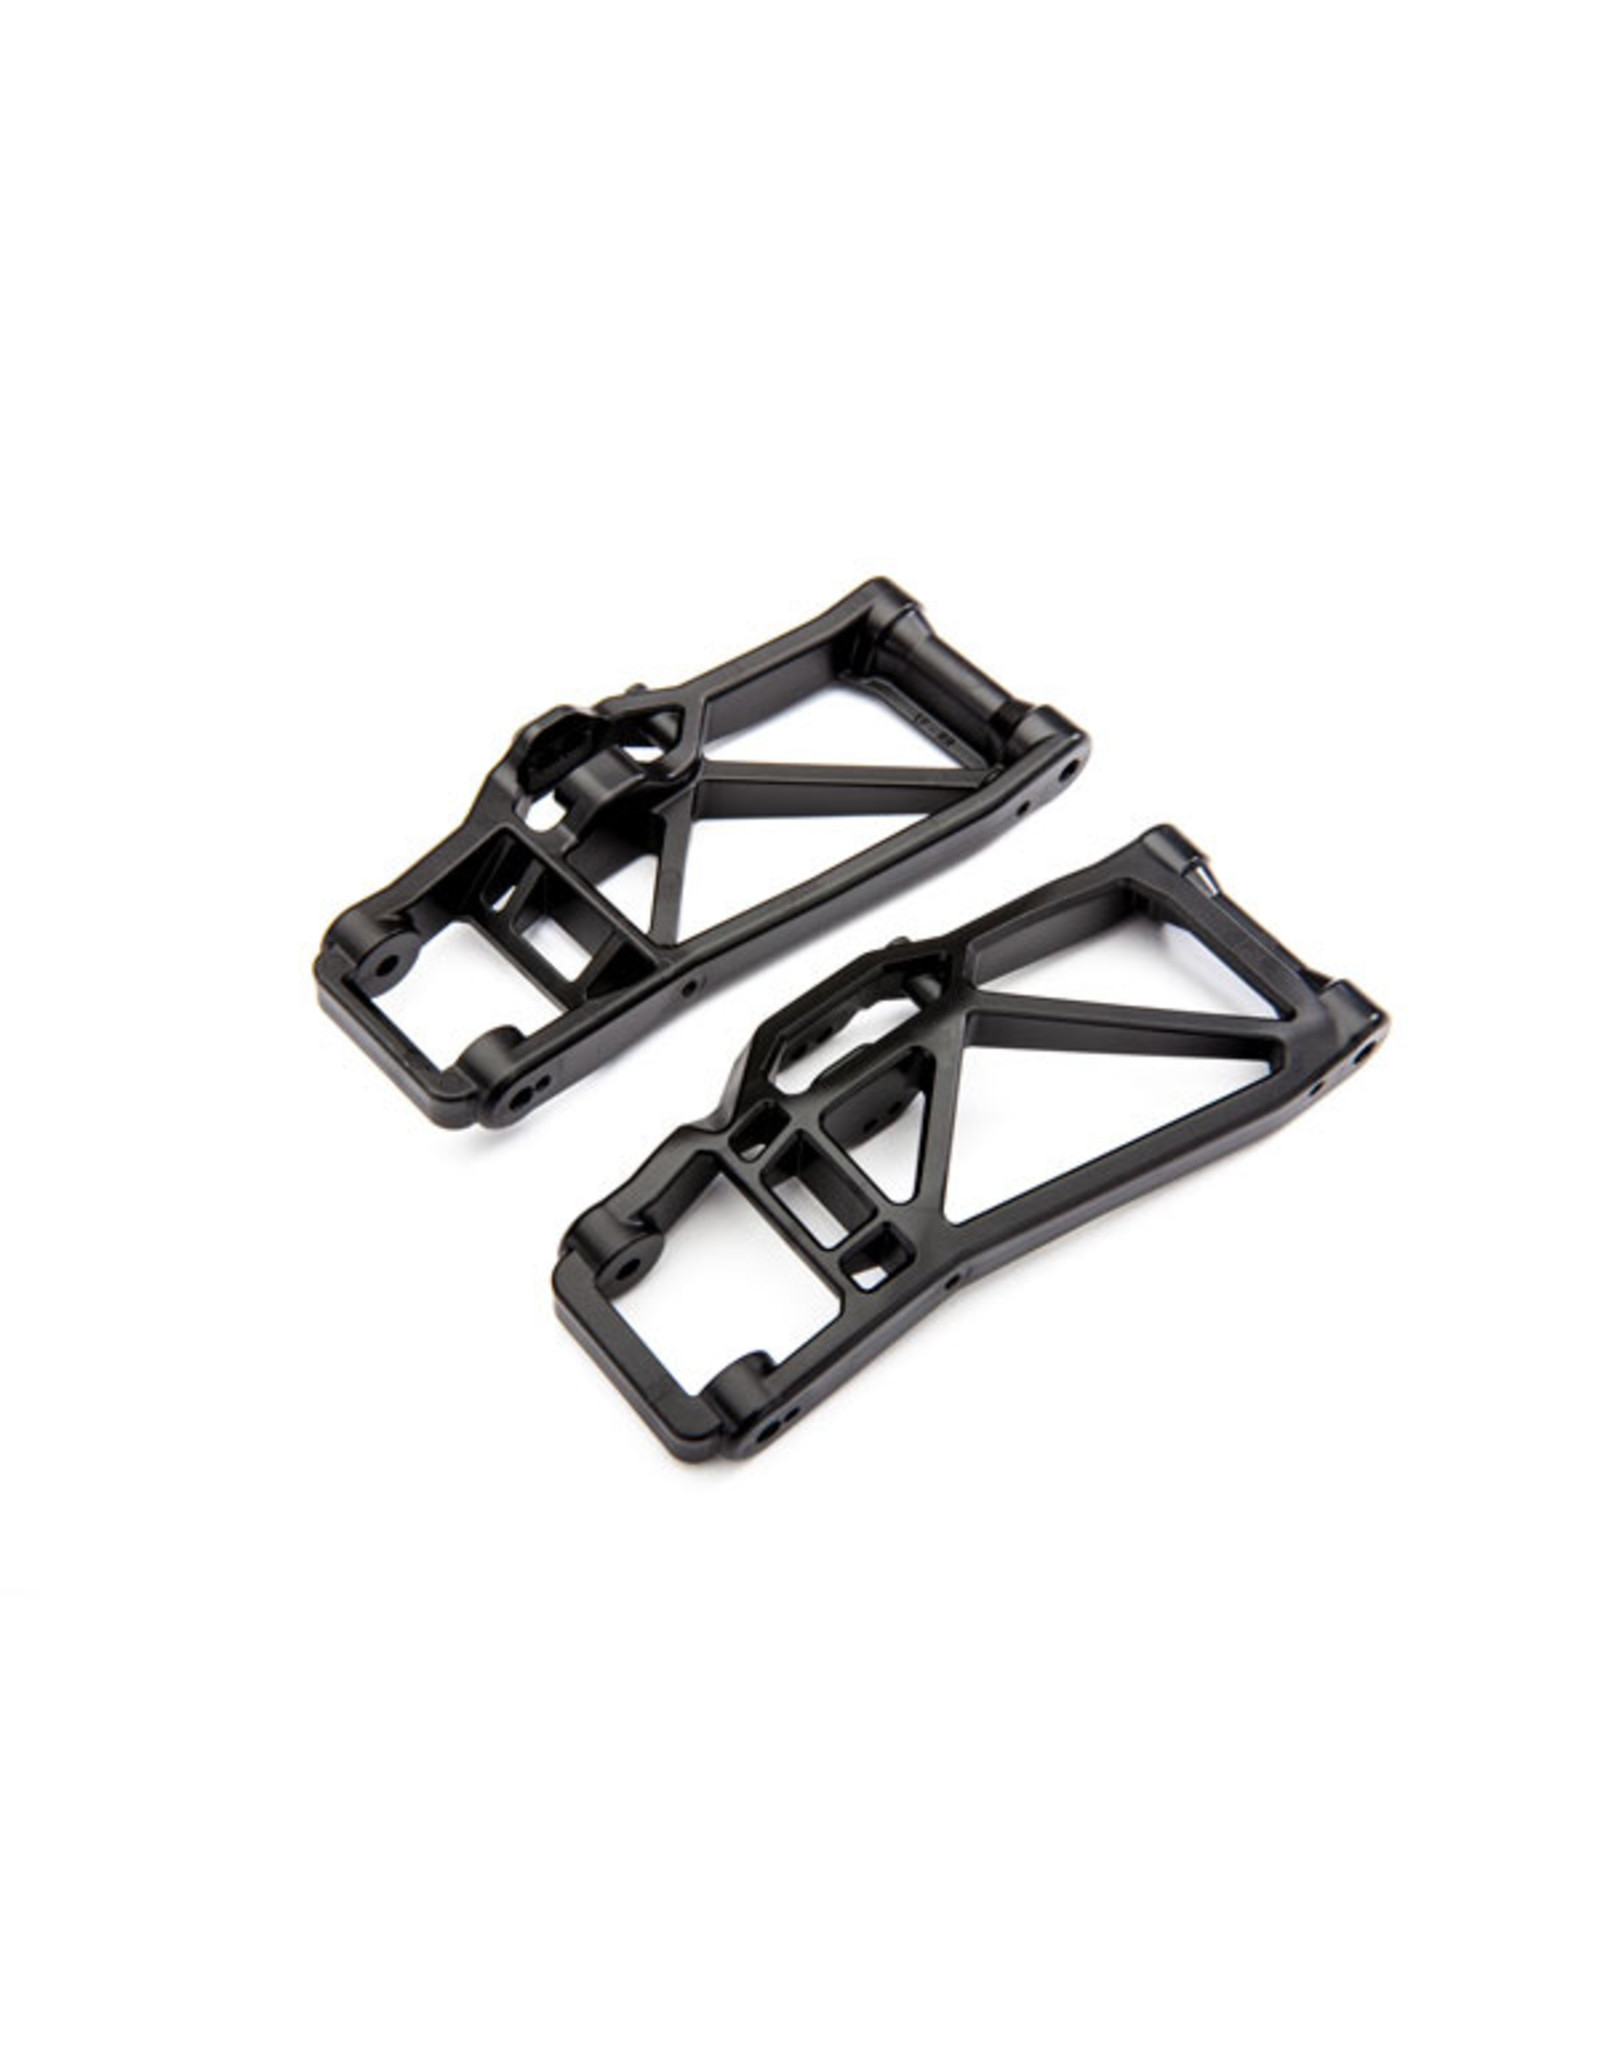 Traxxas Suspension arm, lower, black (left and right, front or rear) (2)(8930)